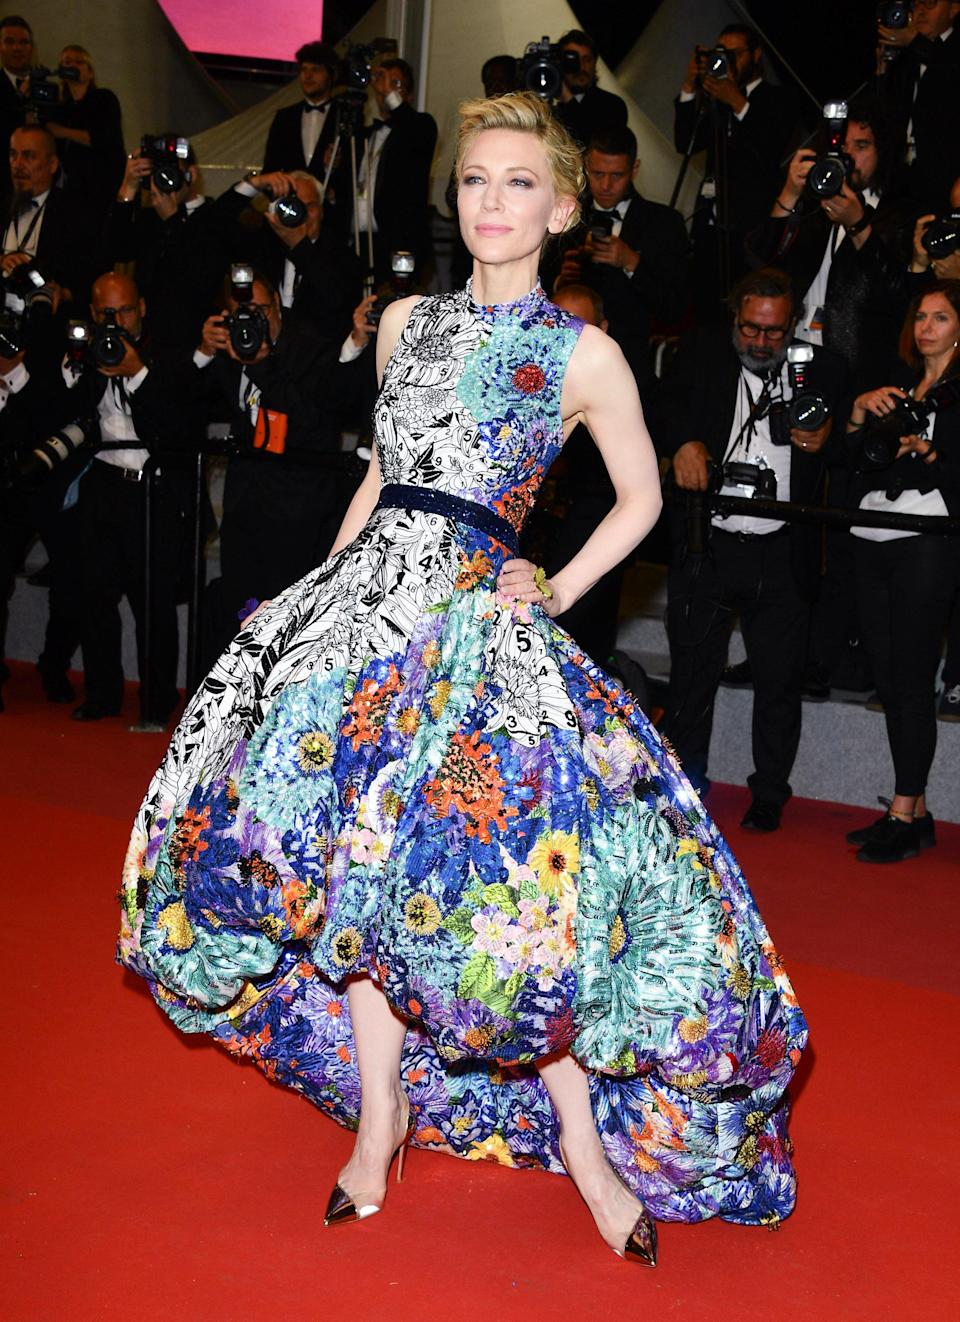 <p>For her red carpet whirl, Cate Blanchett was clad in custom Mary Katrantzou. The hiked-hem dress featured a mix of stunning pattern and colour and was pulled together with a blakc waistband. Just wow. <em>[Photo: Getty]</em> </p>